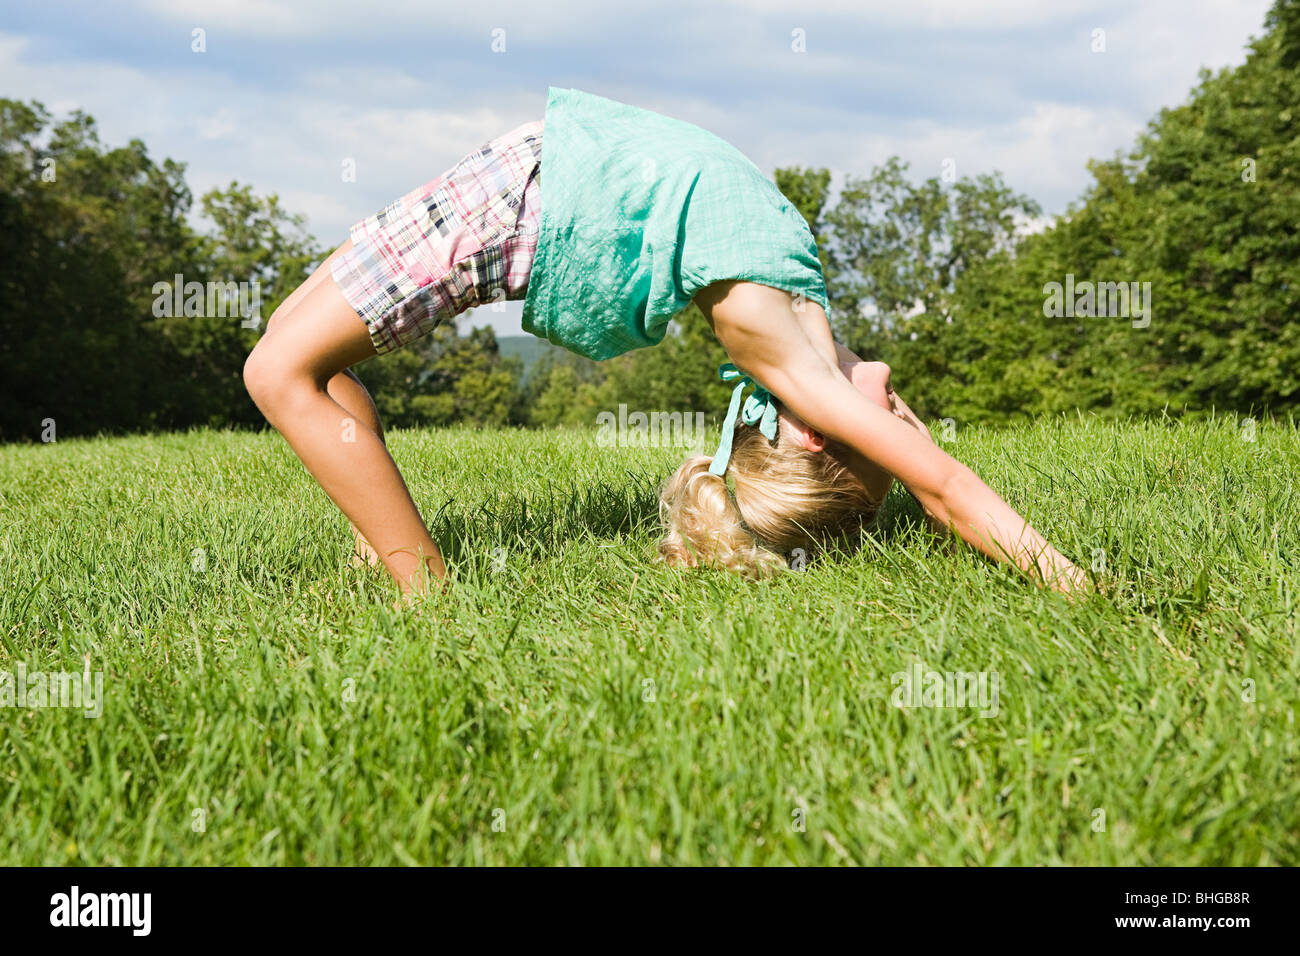 Girl Bending Over Backwards Stock Photo Royalty Free